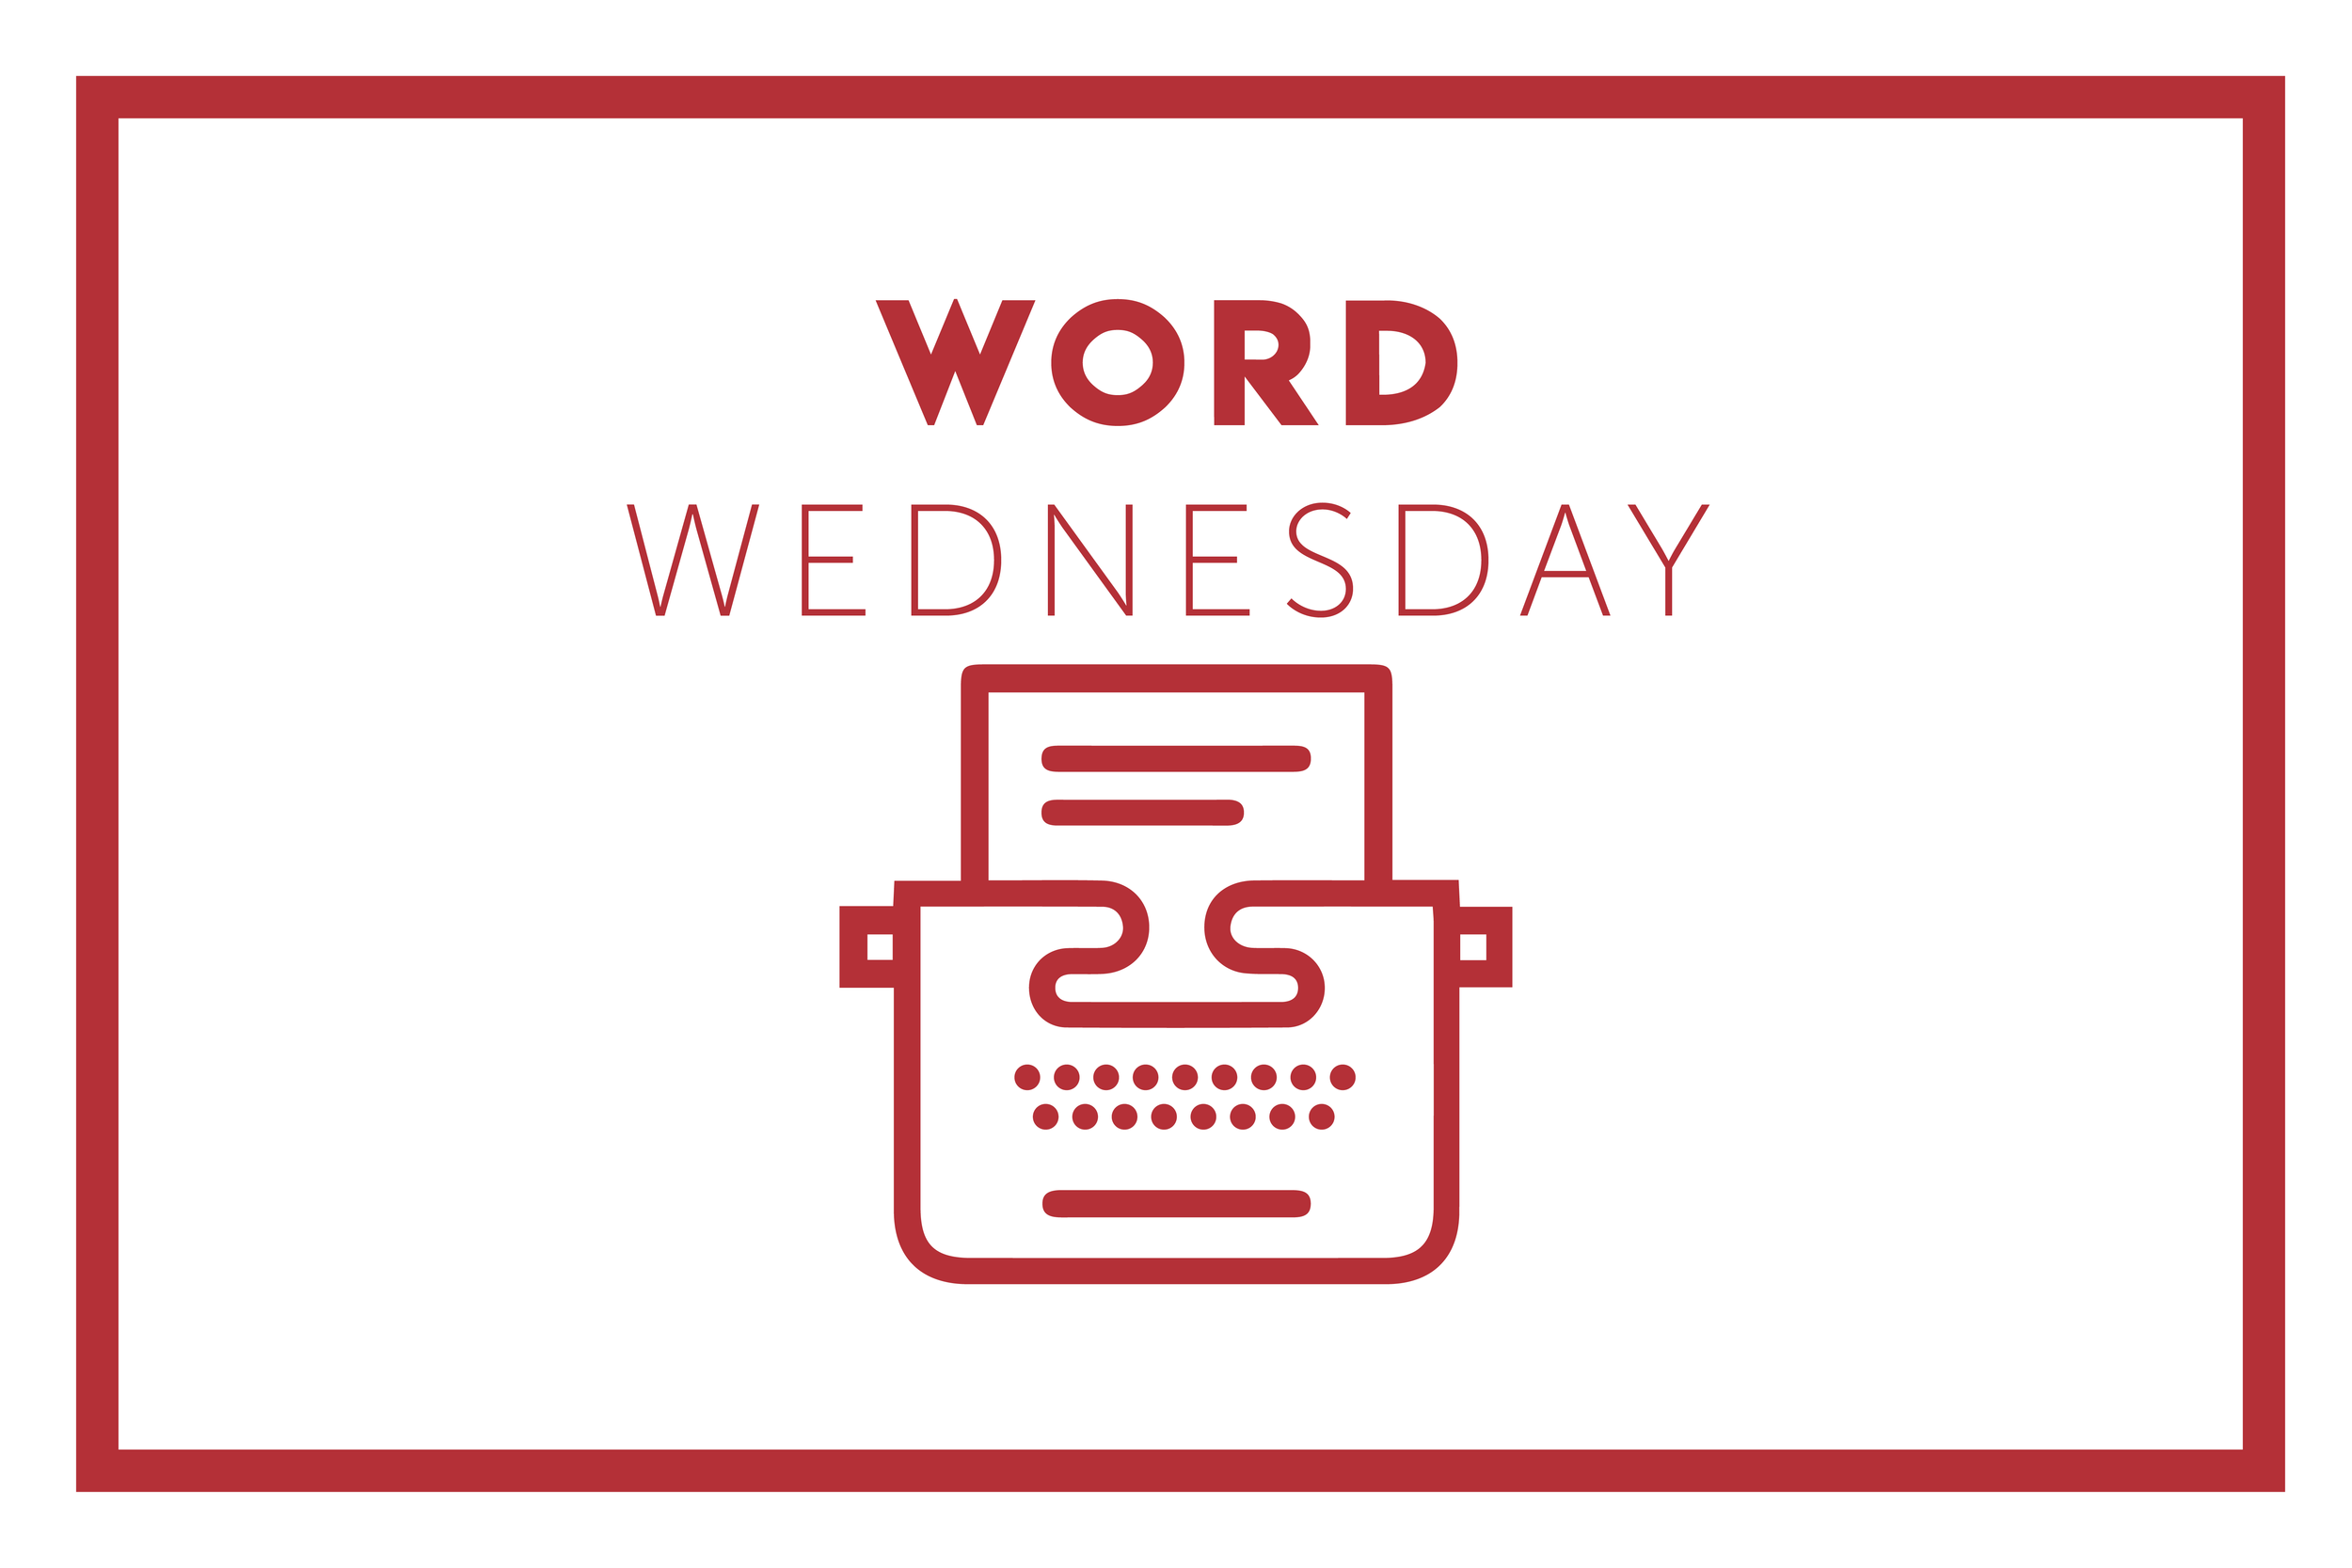 WORDSWEDNESDAY-04.png